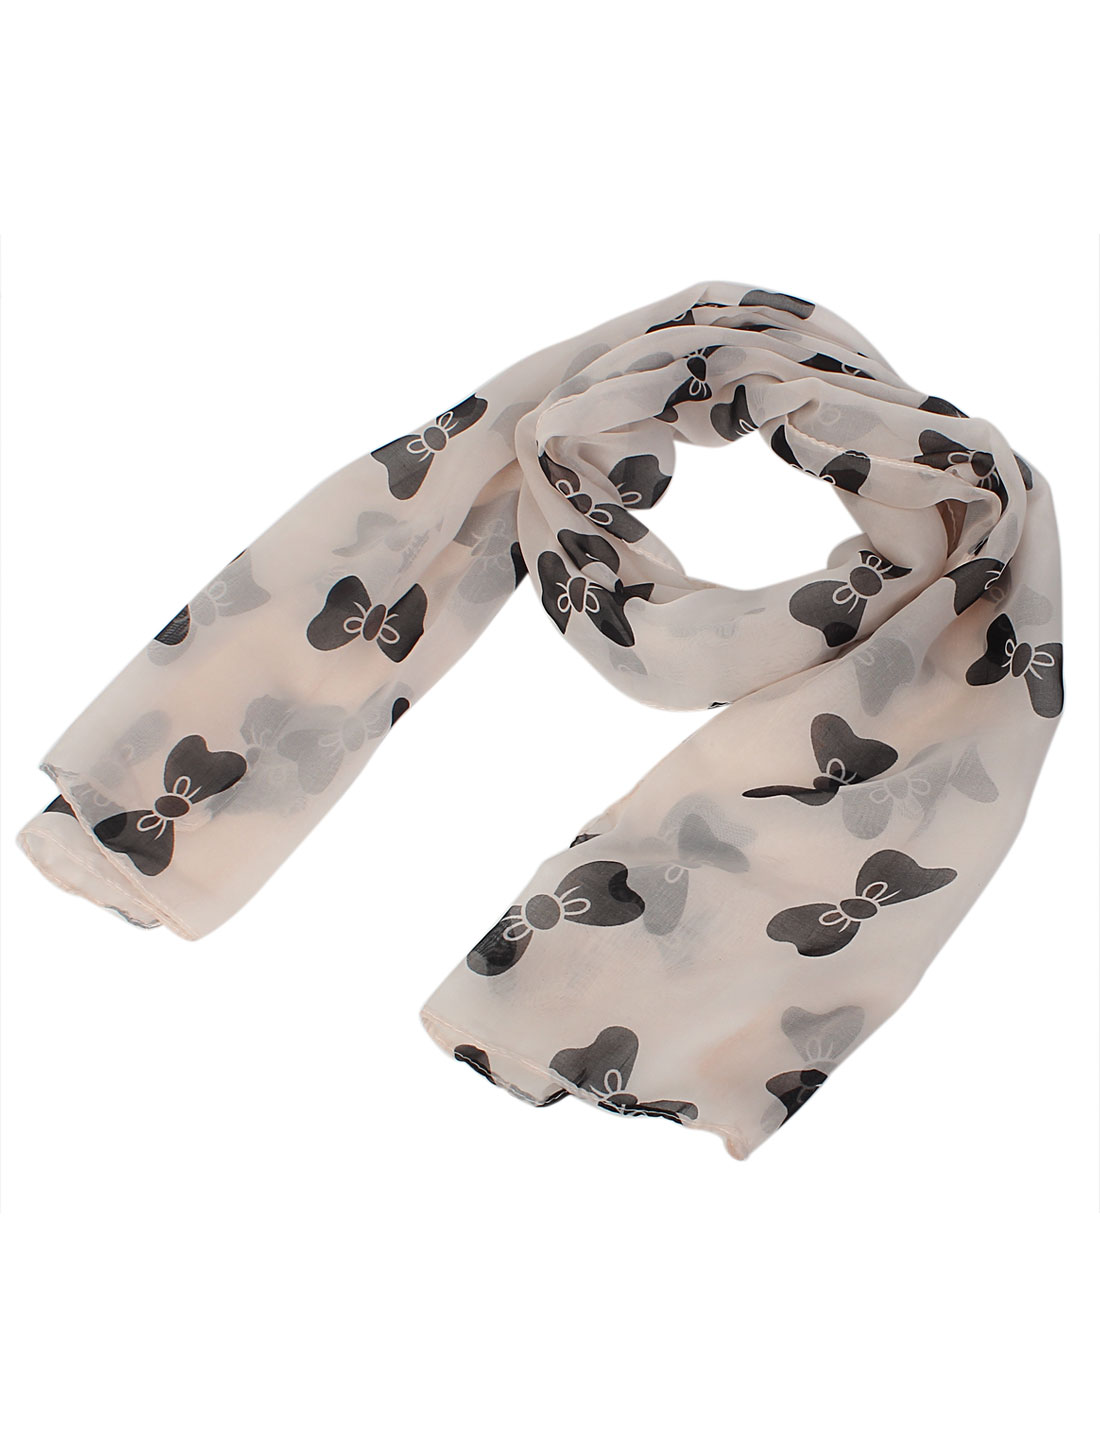 Women Lady Fashion Bowknot Print Long Soft Chiffon Scarf Shawl Wrap Black Pink